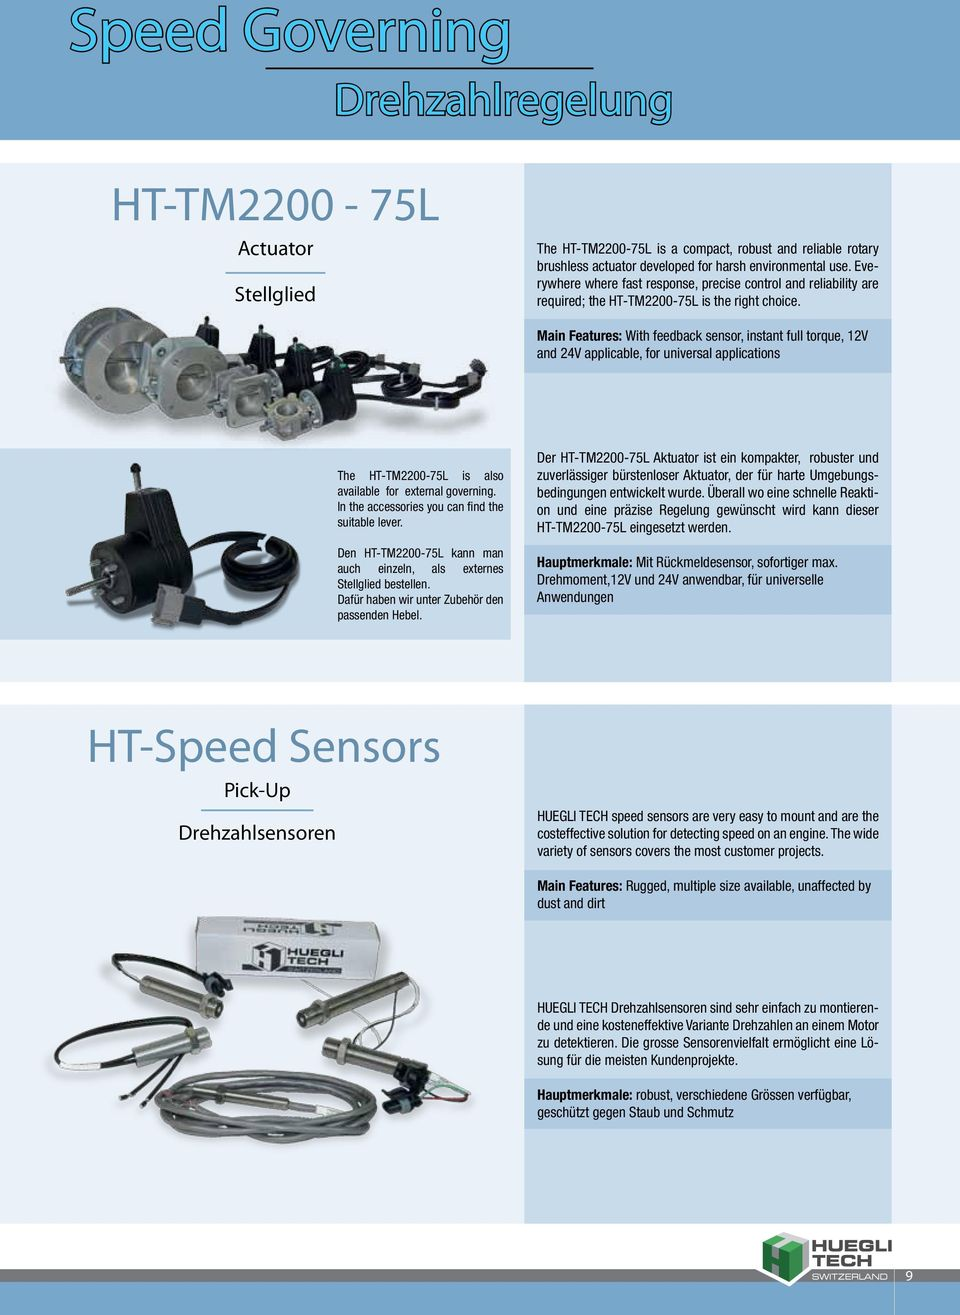 Main Features: With feedback sensor, instant full torque, 12V and 24V applicable, for universal applications The HT-TM2200-75L is also available for external governing.